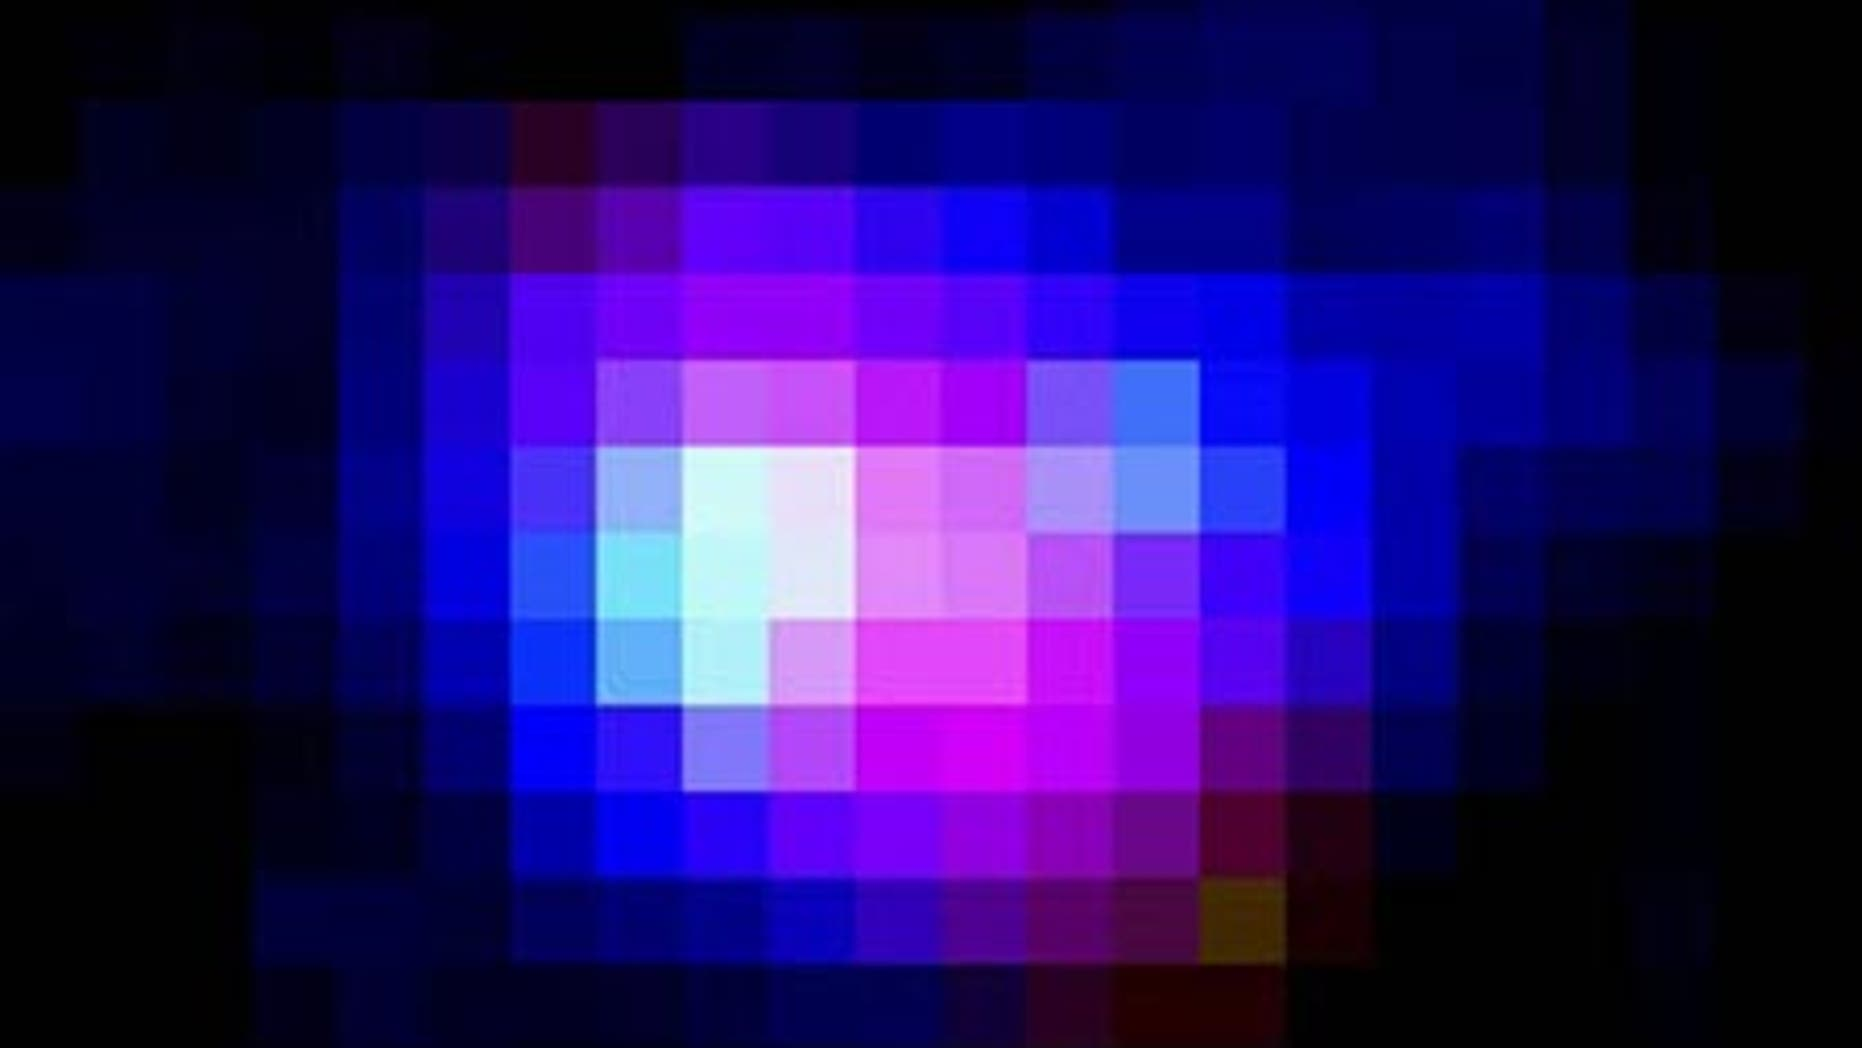 This image of the Himiko object, the most massive object ever discovered in the early universe, is a composite and in false color.